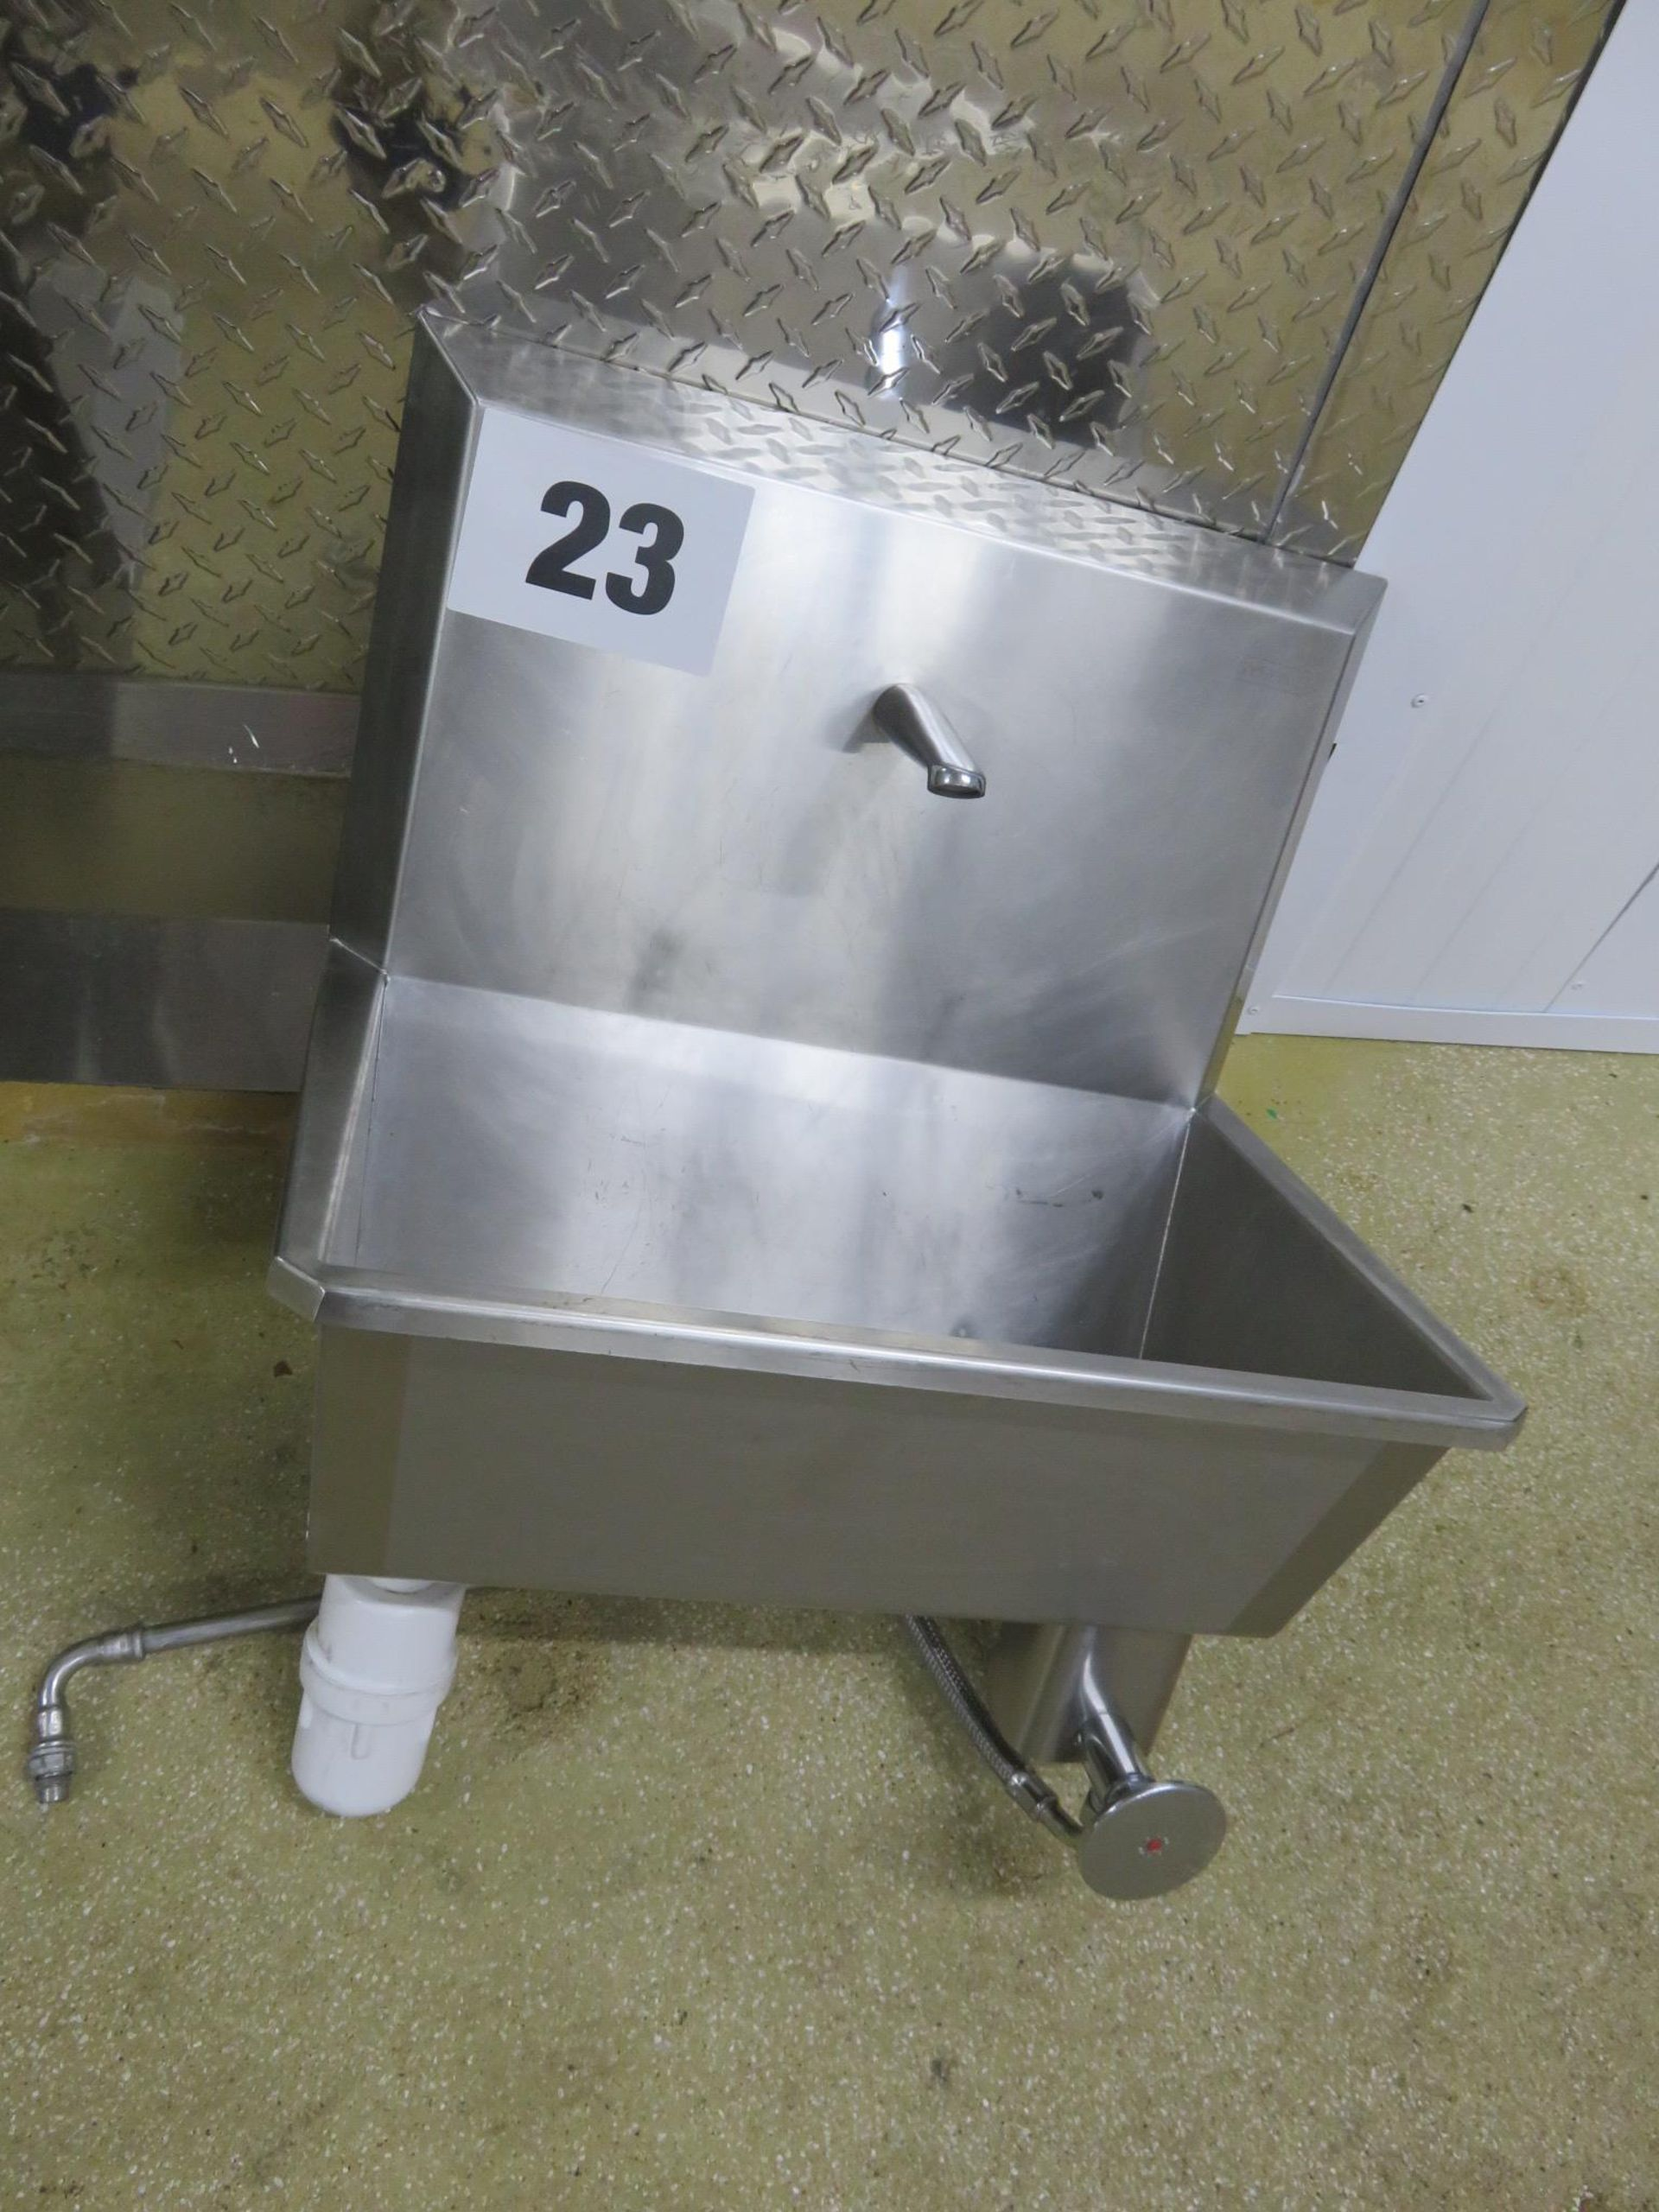 Lot 23 - Syspal S/s Sink - knee operated. Lift out £15